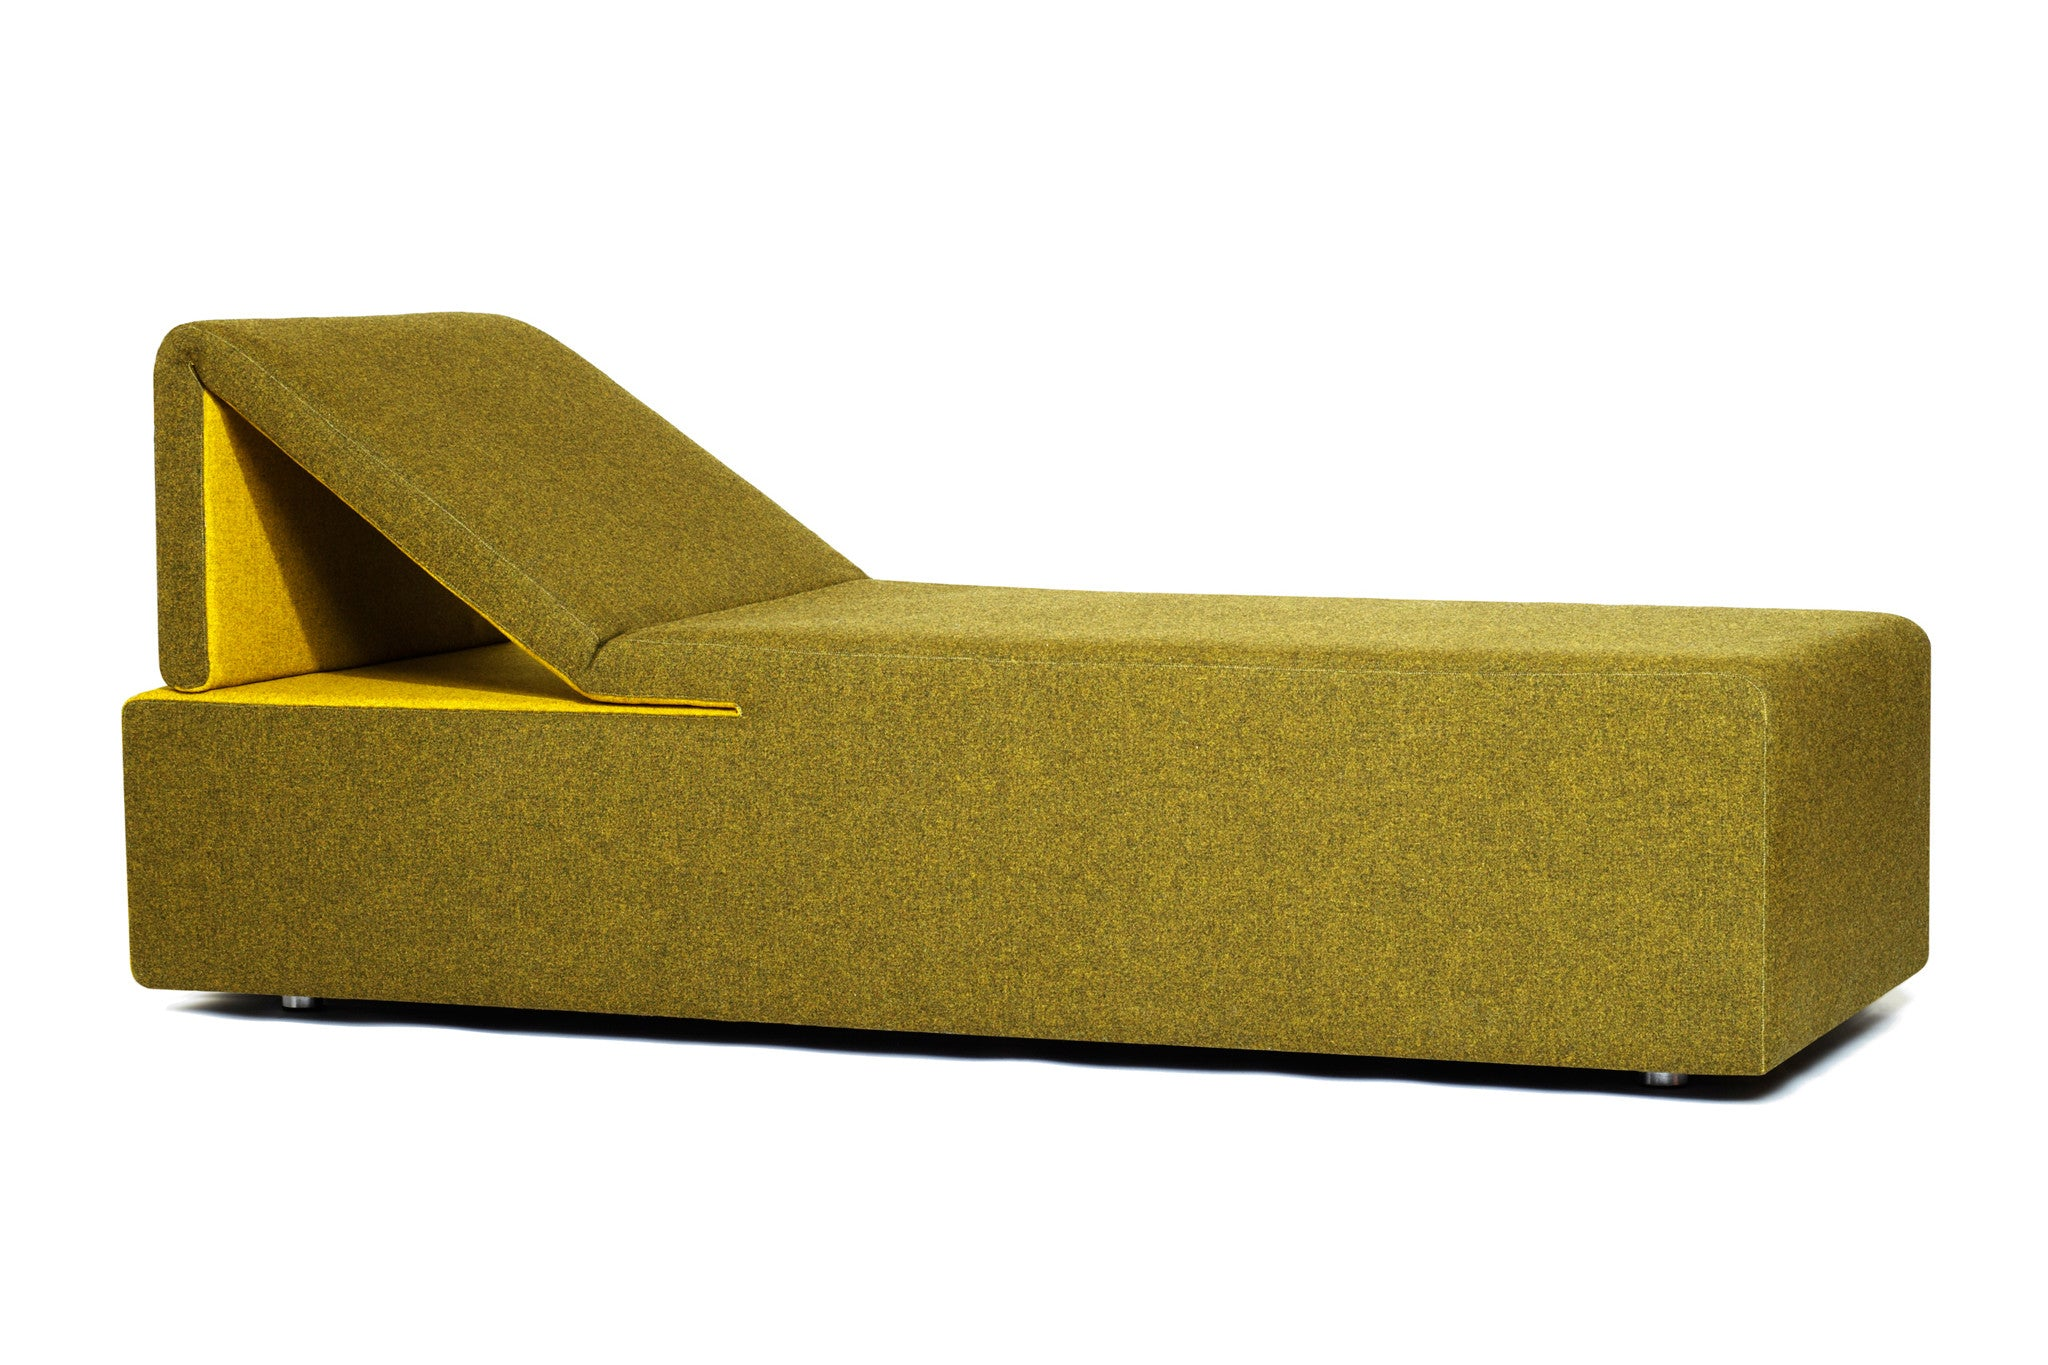 council peel chaise products design green lounge